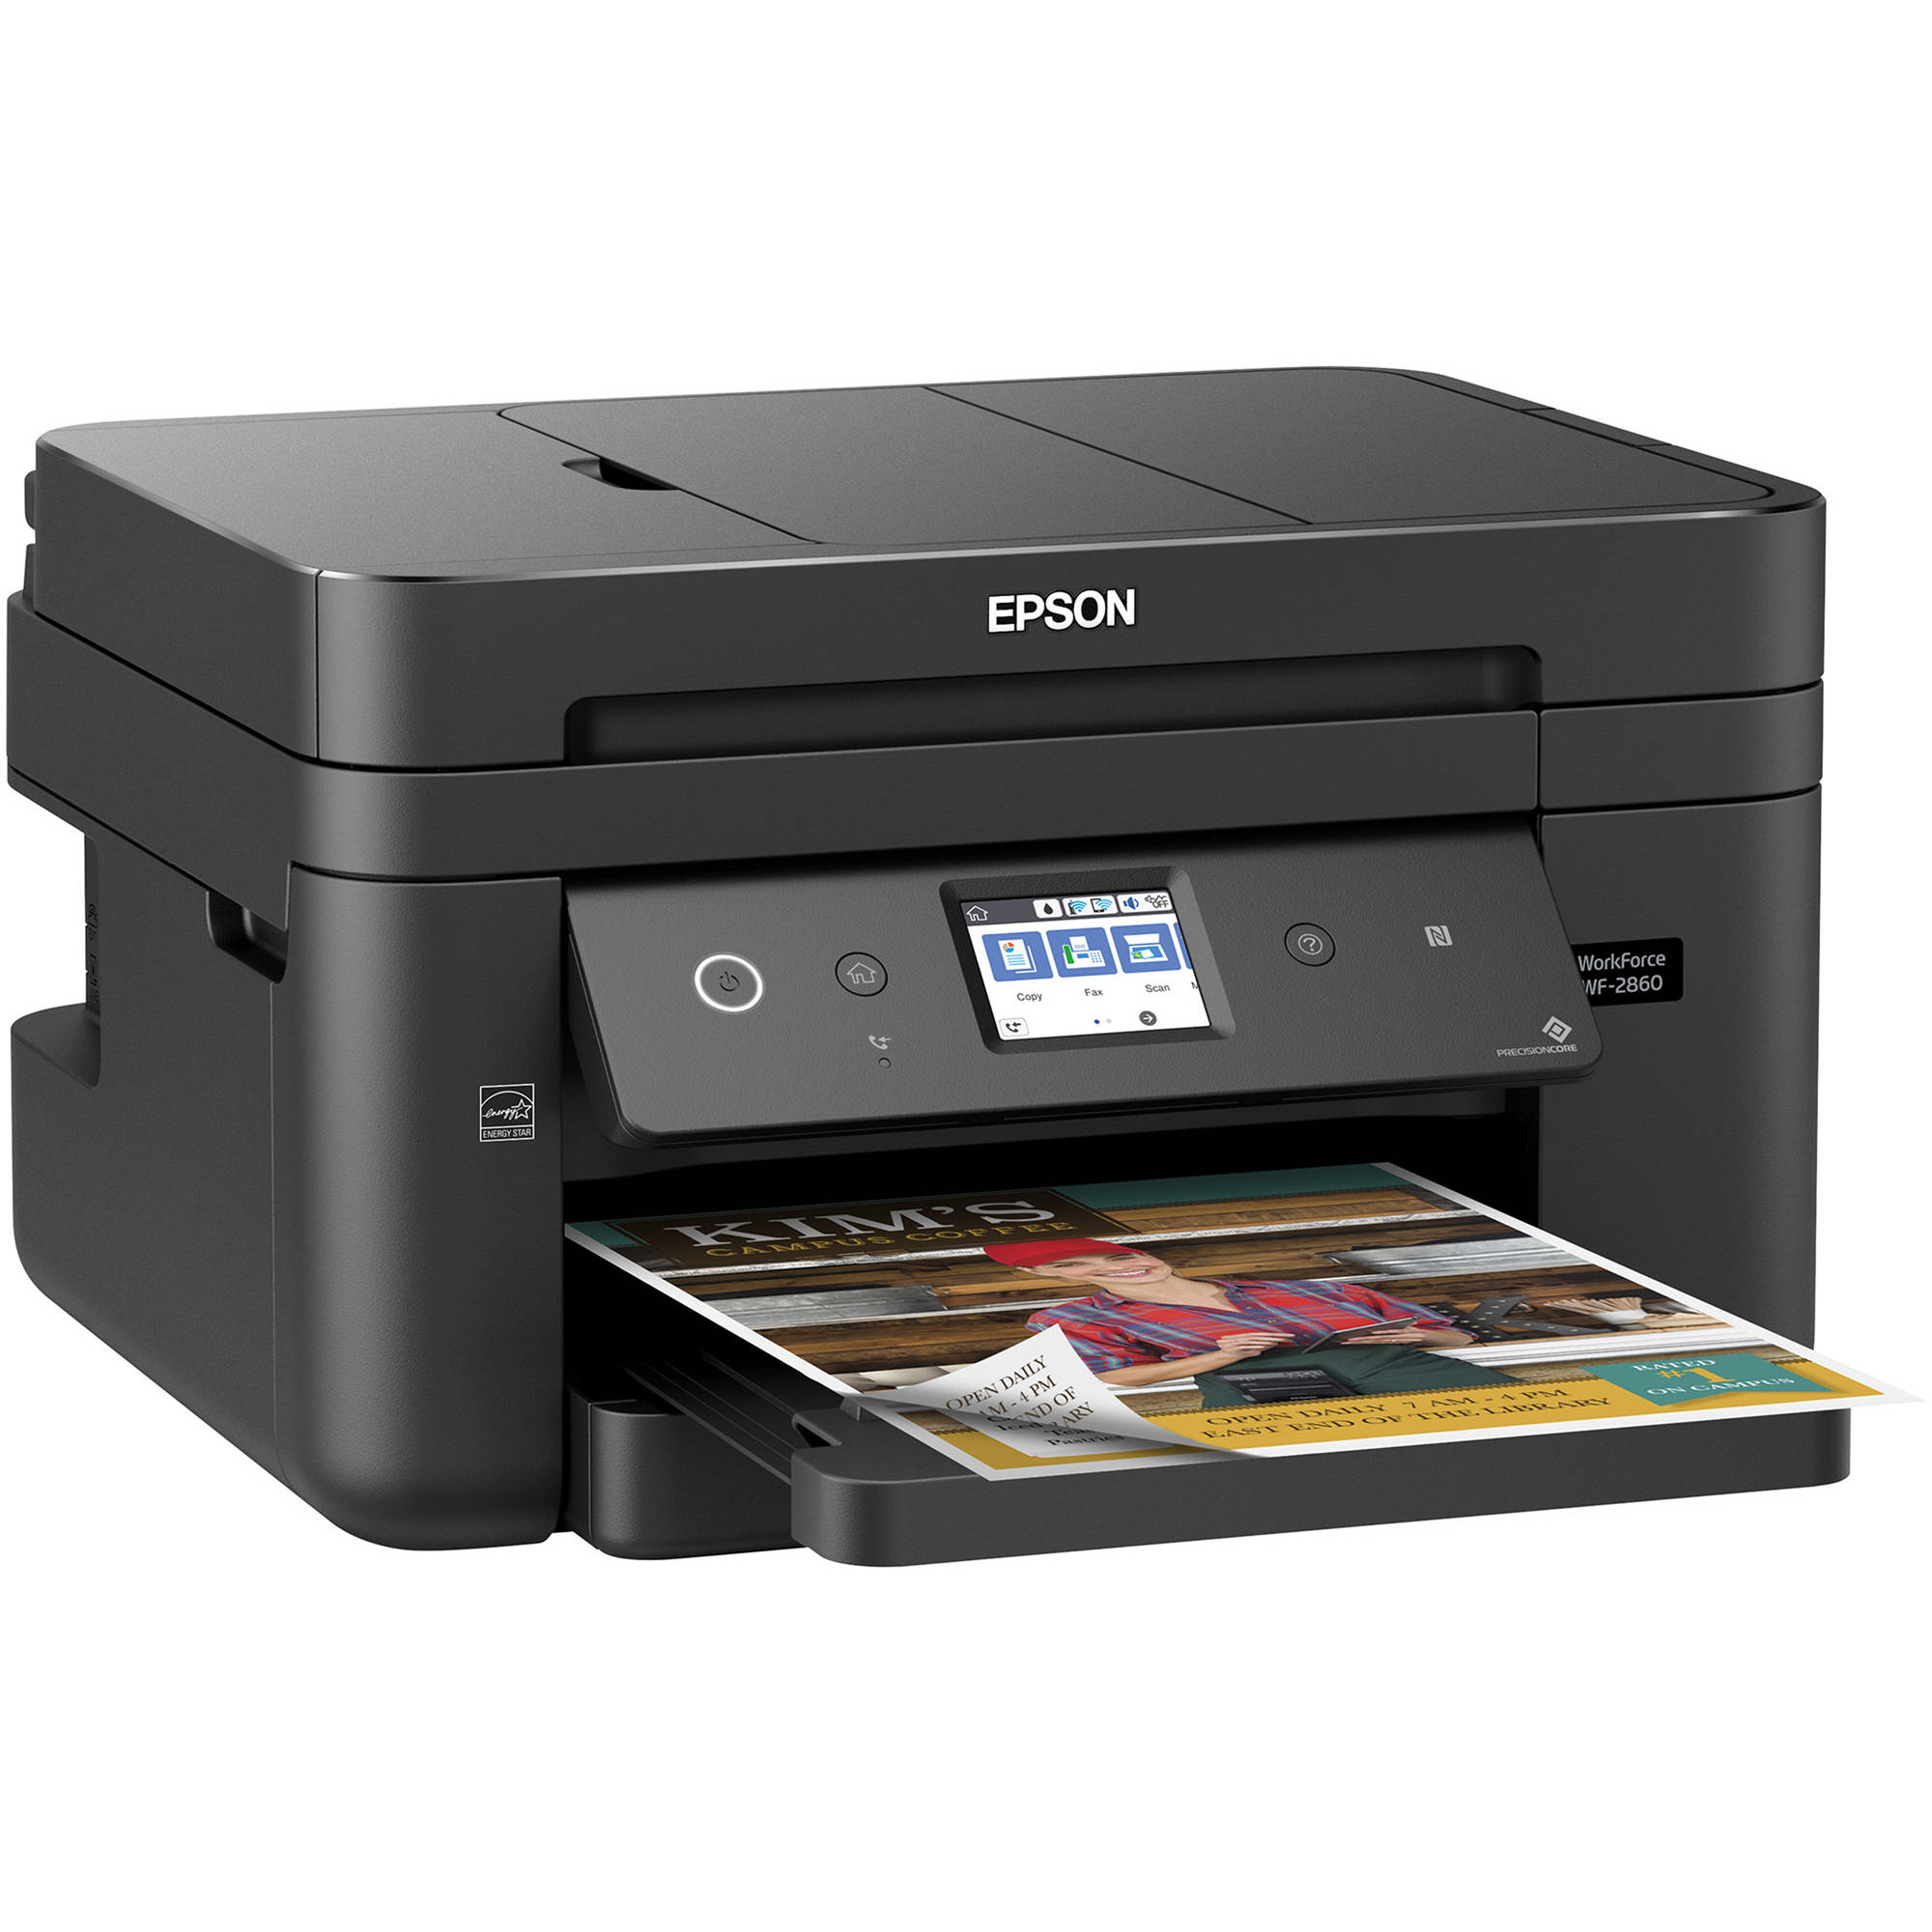 Register Epson Printer With Cloud Services